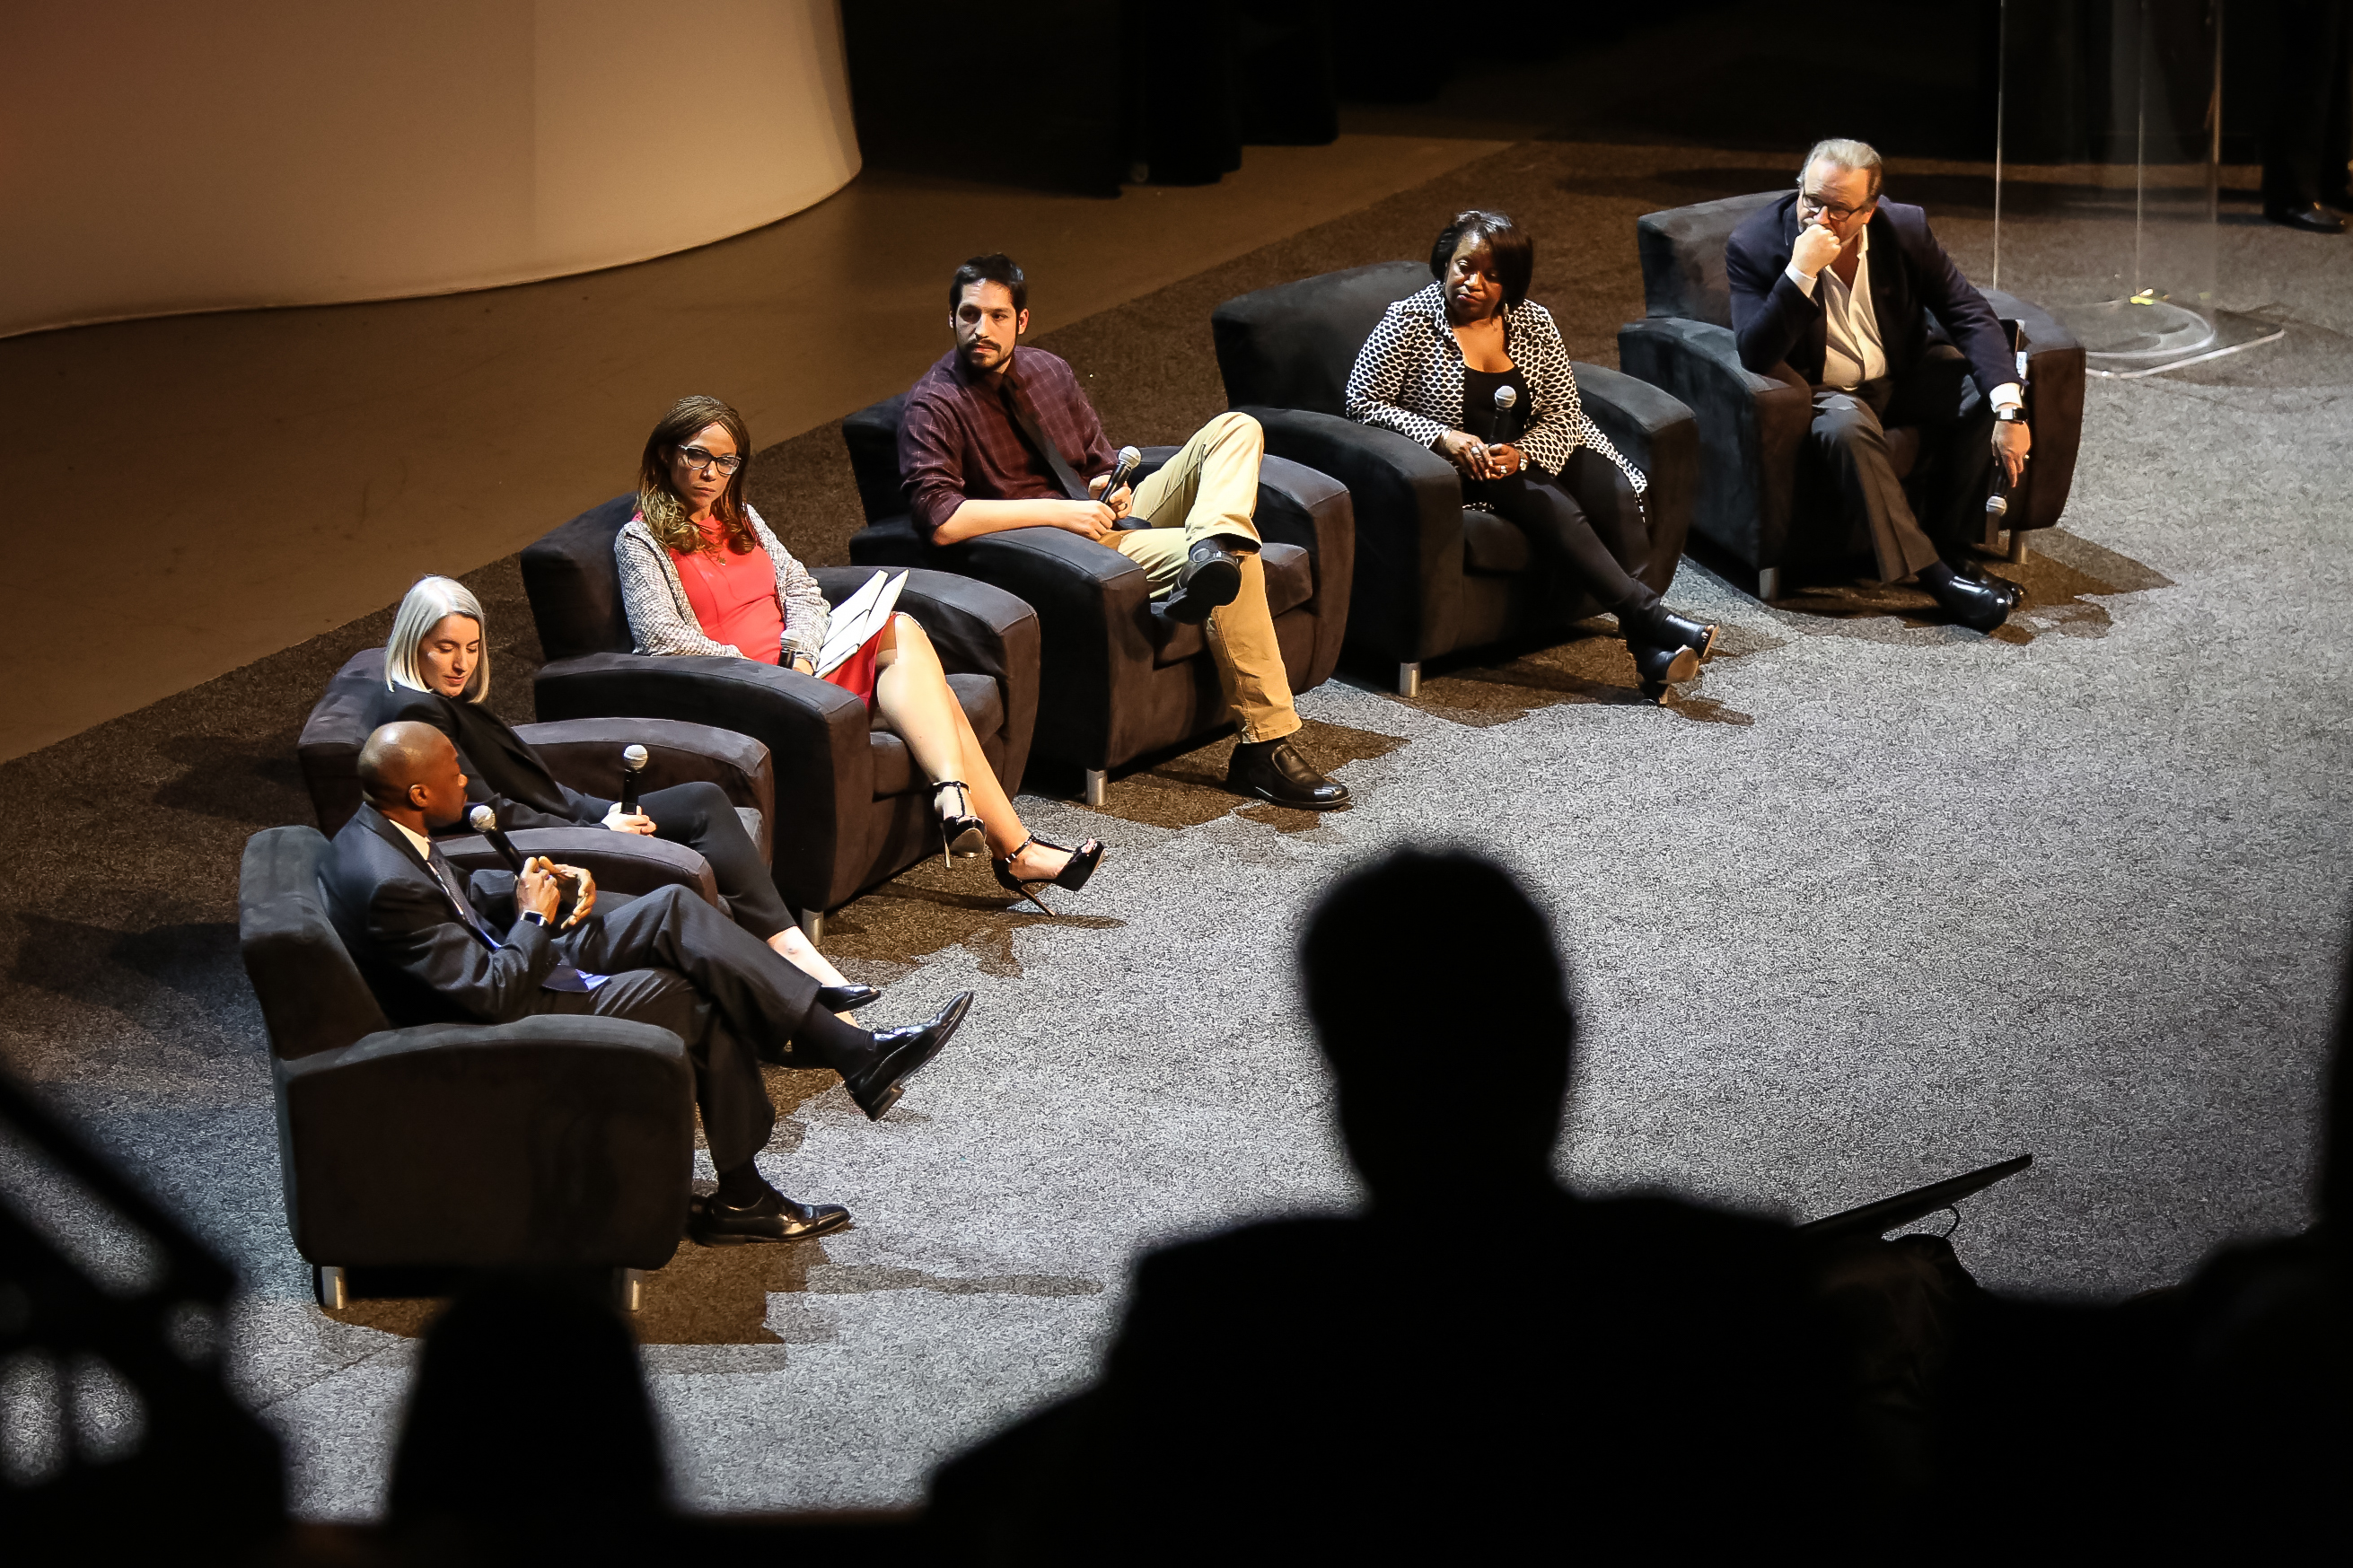 Six people sitting in chairs on a stage